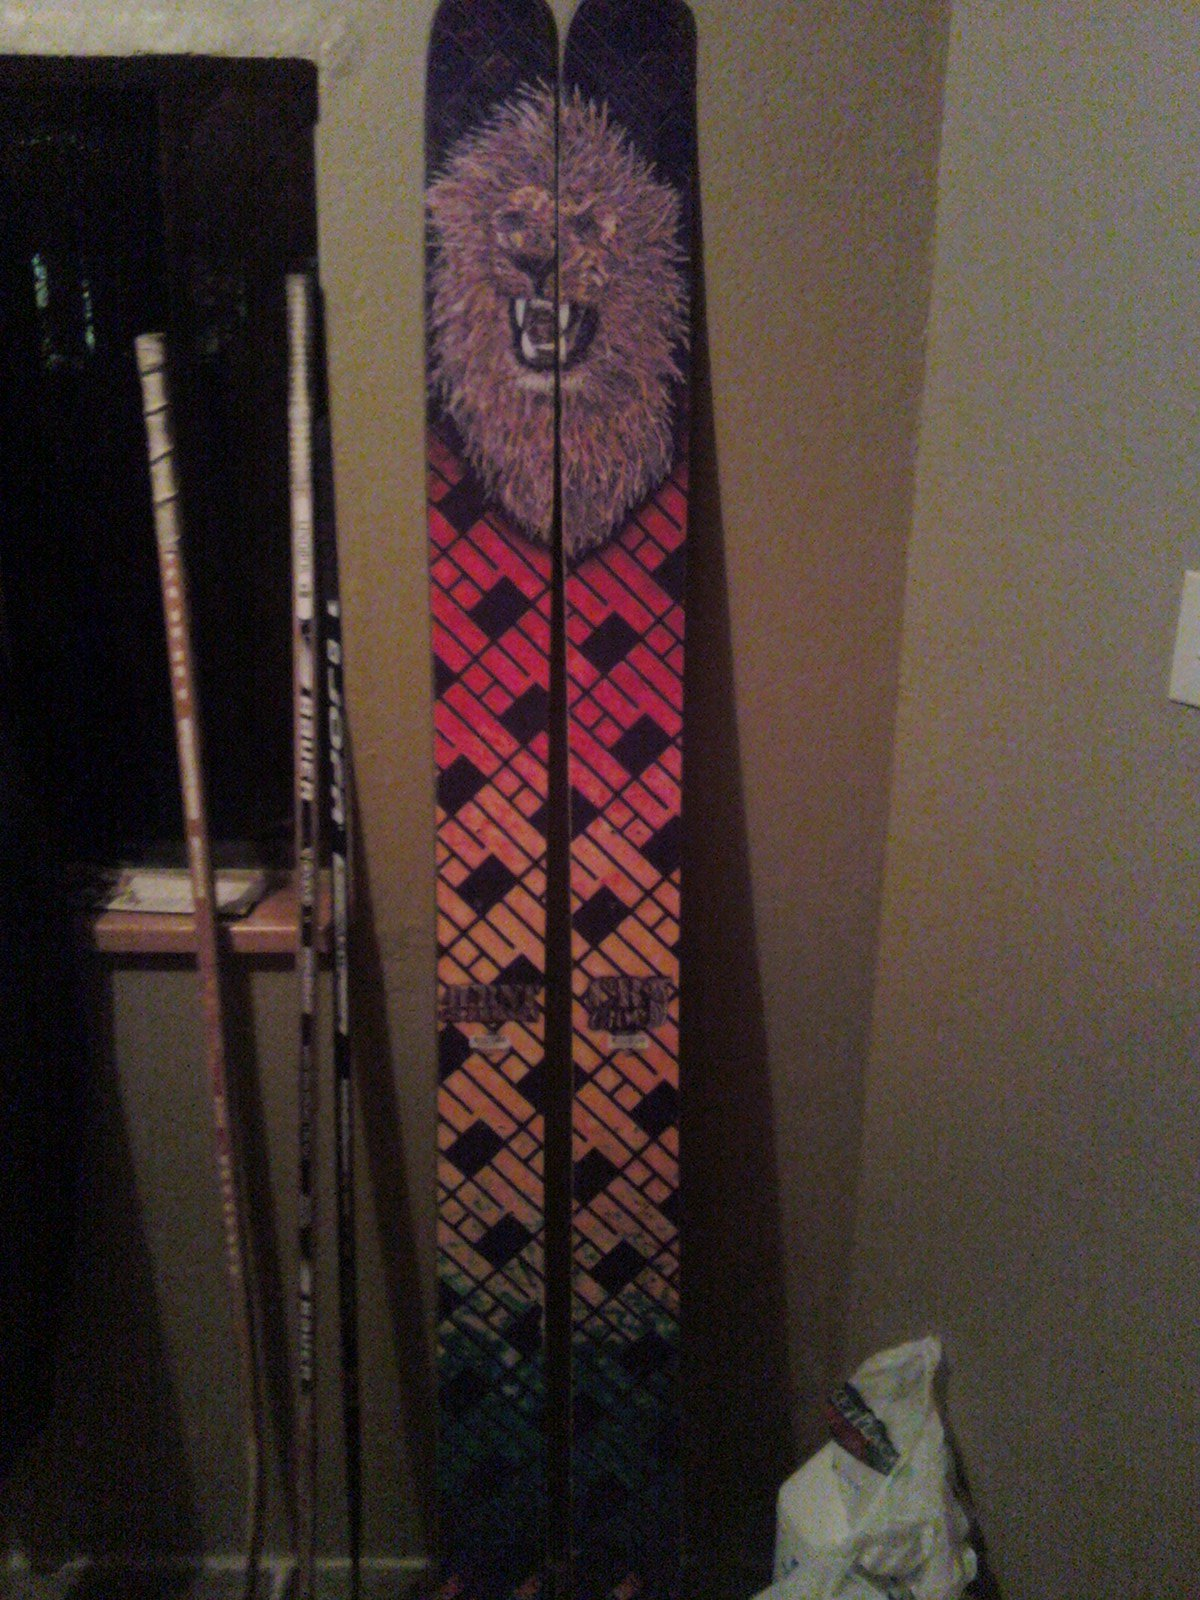 My new pow skis!